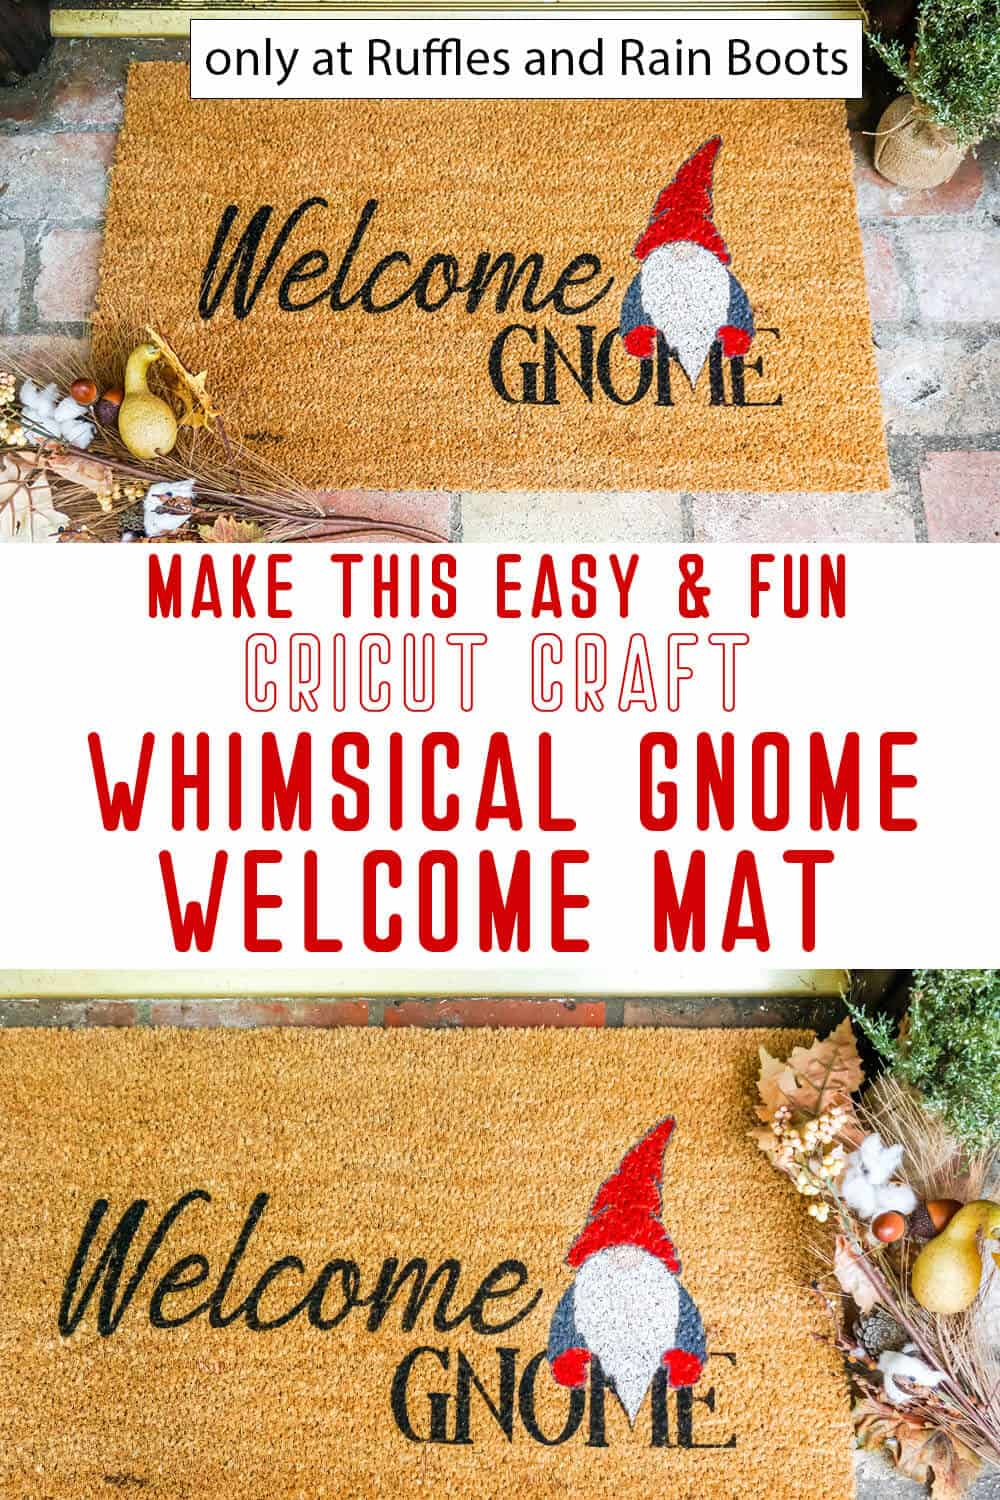 photo collage of cricut doormat using a stencil with text which reads make this easy and fun cricut craft whimsical gnome welcome mat